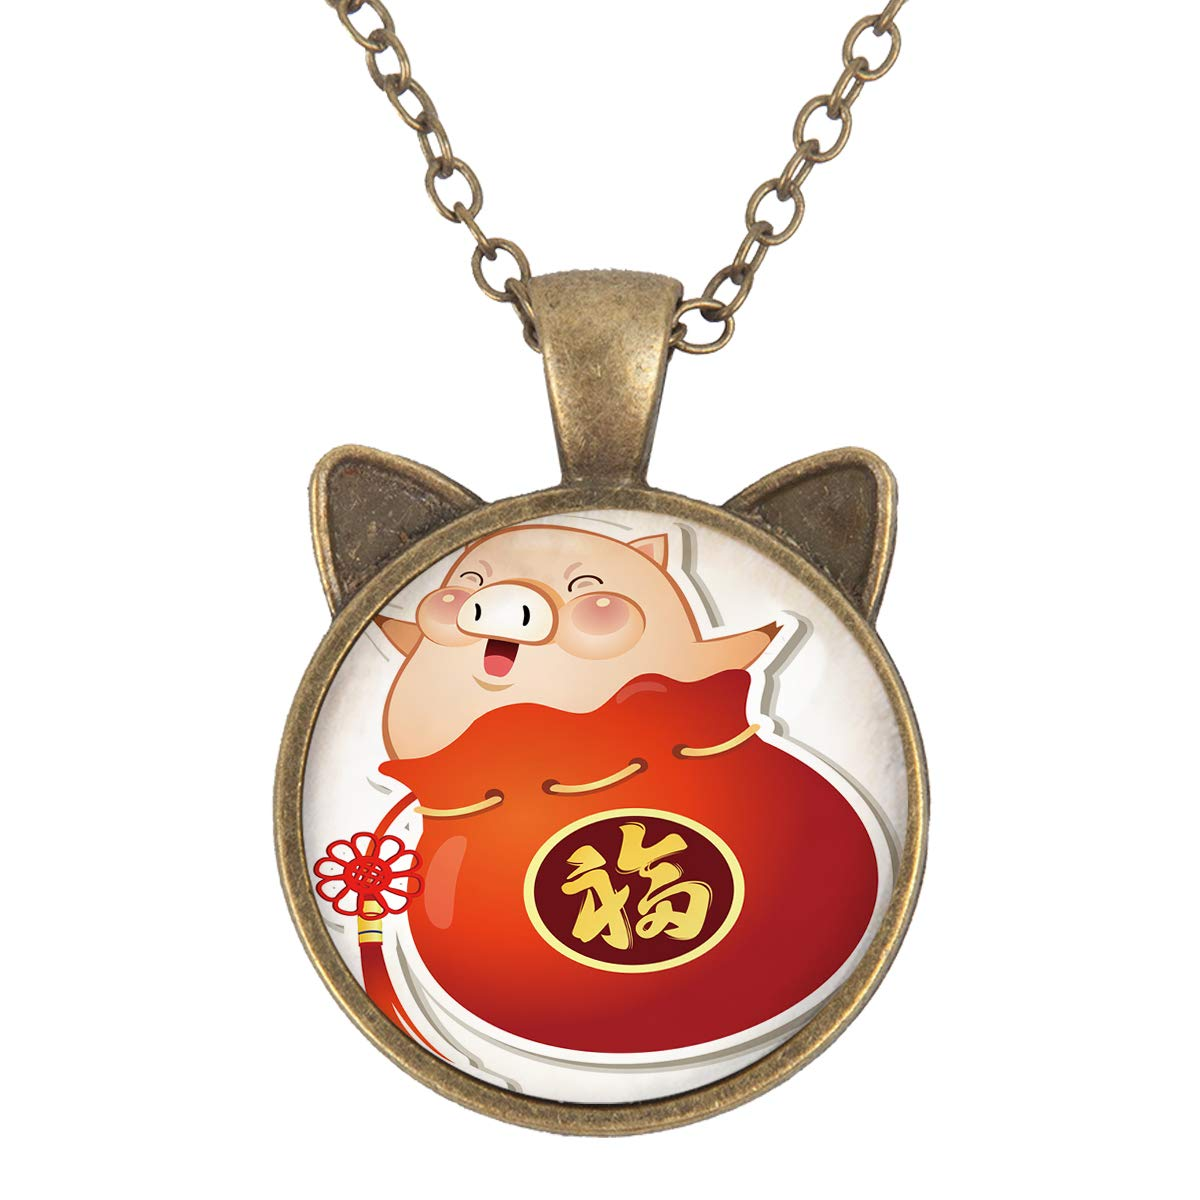 LooPoP Cat Pendant Necklace Jewelry for Women Kids Gifts Included Free Charm Chain Happy Pig